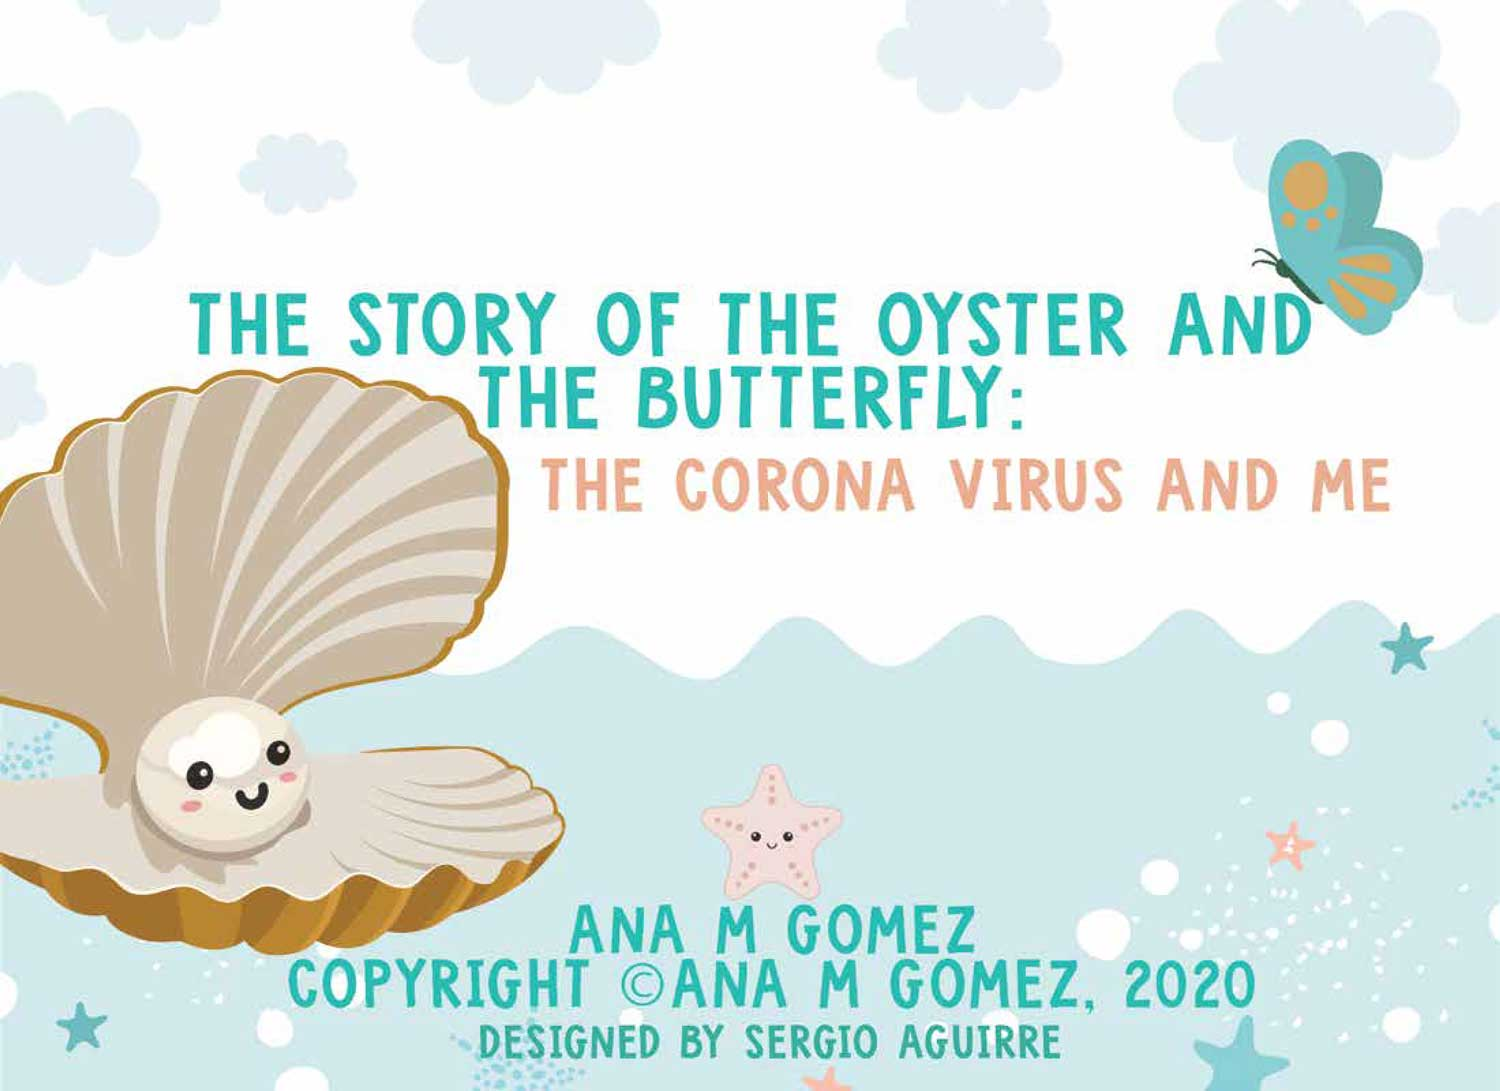 The Story of the Oyster and the Butterfly